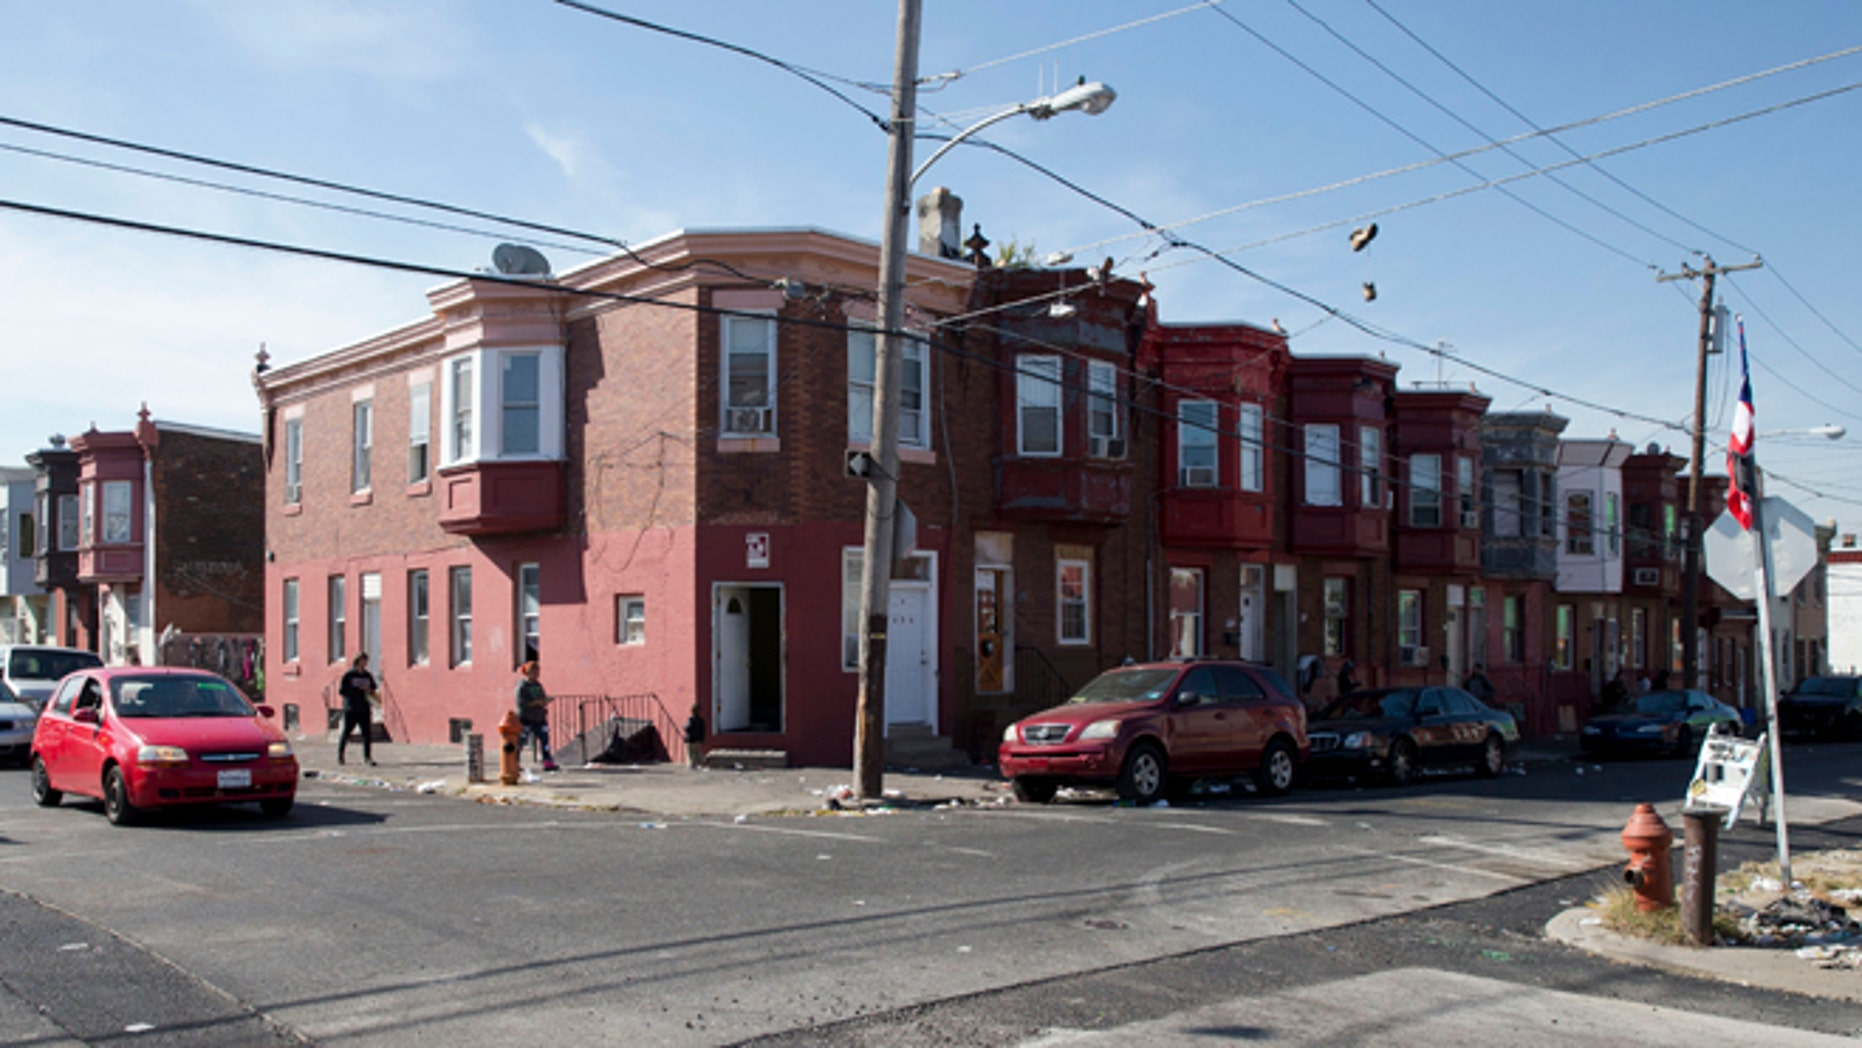 In this Wednesday, Oct. 21, 2015, photo, the intersection of Marshall and Tioga streets in Philadelphia is shown. Drug kingpin Myrna Suren ran a $100,000-a-week cocaine ring centered around this corner in Philadelphia's Hunting Park neighborhood in the 1980s, but is leaving prison soon after her life sentence was cut to 25 years under revised U.S. drug policies. She is one of 6,000 drug offenders leaving prison early this year. (AP Photo/Matt Rourke)